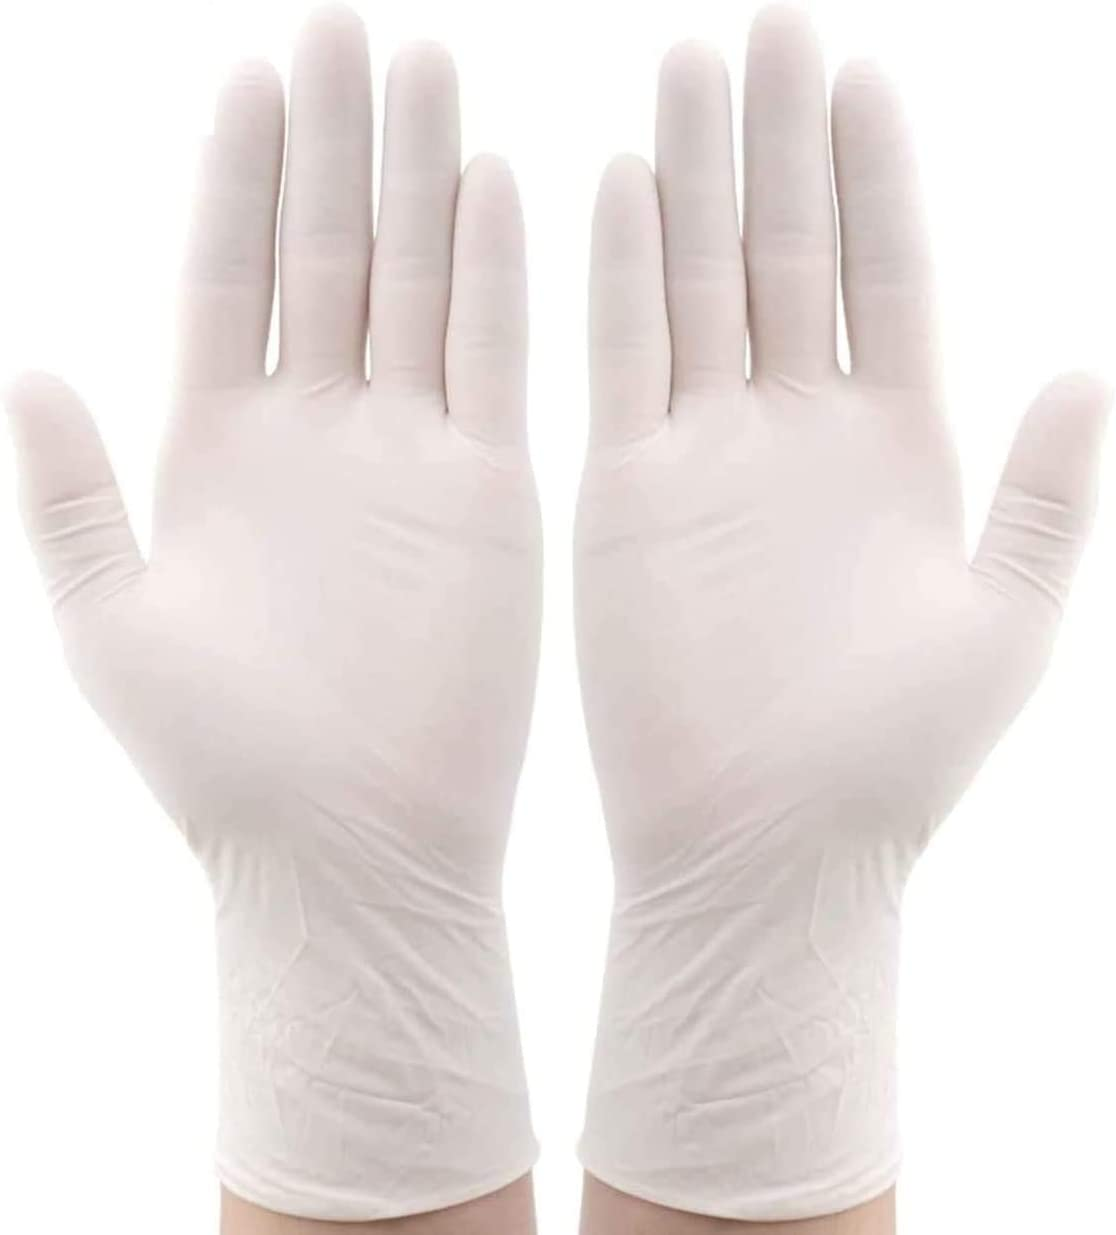 Amazon.com: Disposable Latex Gloves, Comfortable to Wear Cleaning Gloves  100Pcs Neutral (Medium): Health & Personal Care